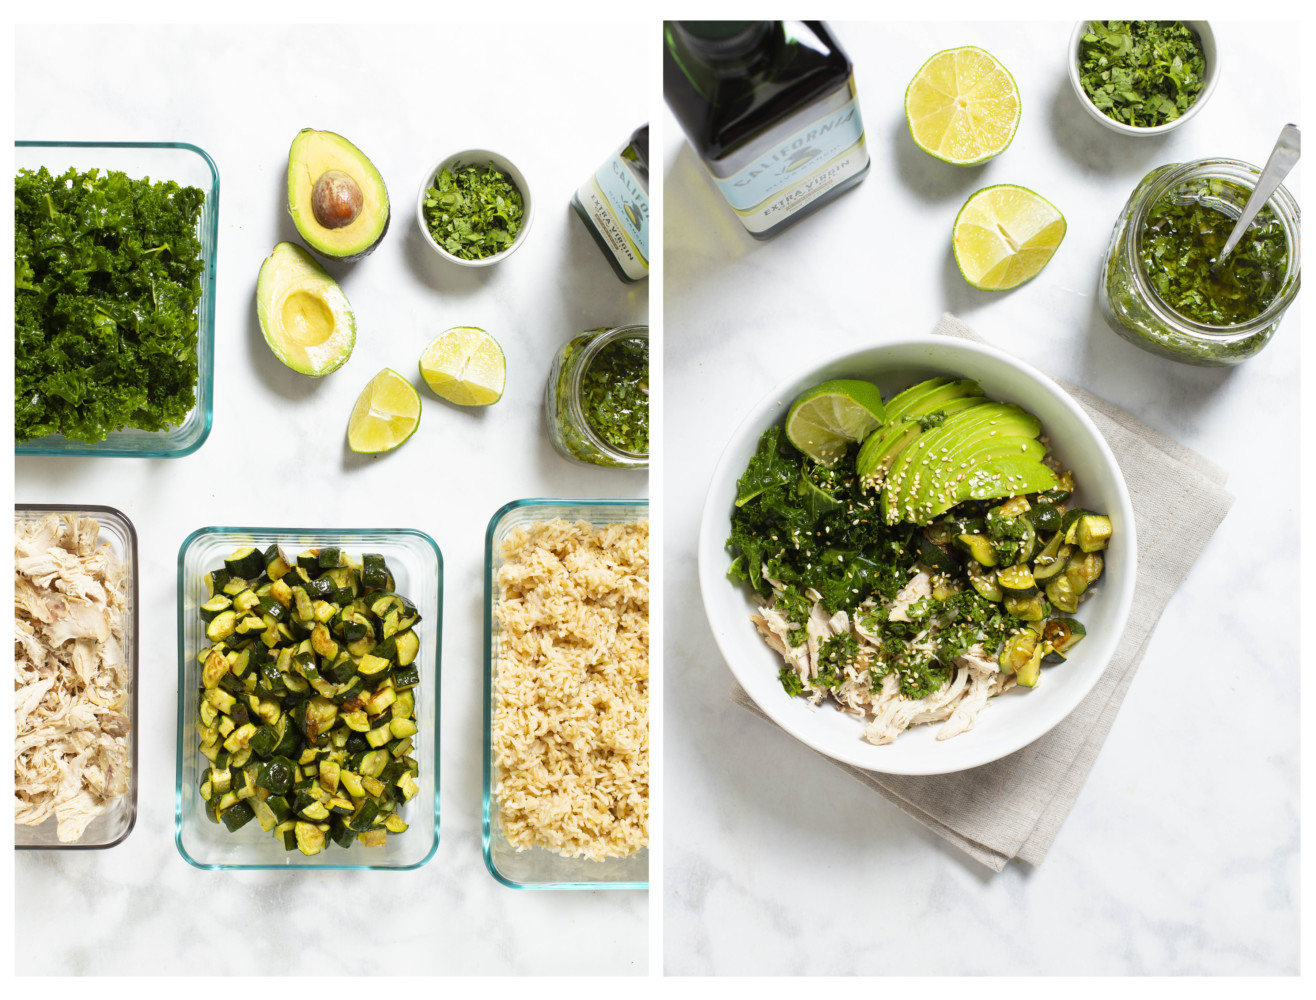 ingredients in glass bowls with extra virgin olive oil, avocado, kale, brown rice, chicken, and pesto. On the right they are all put together in a bowl.